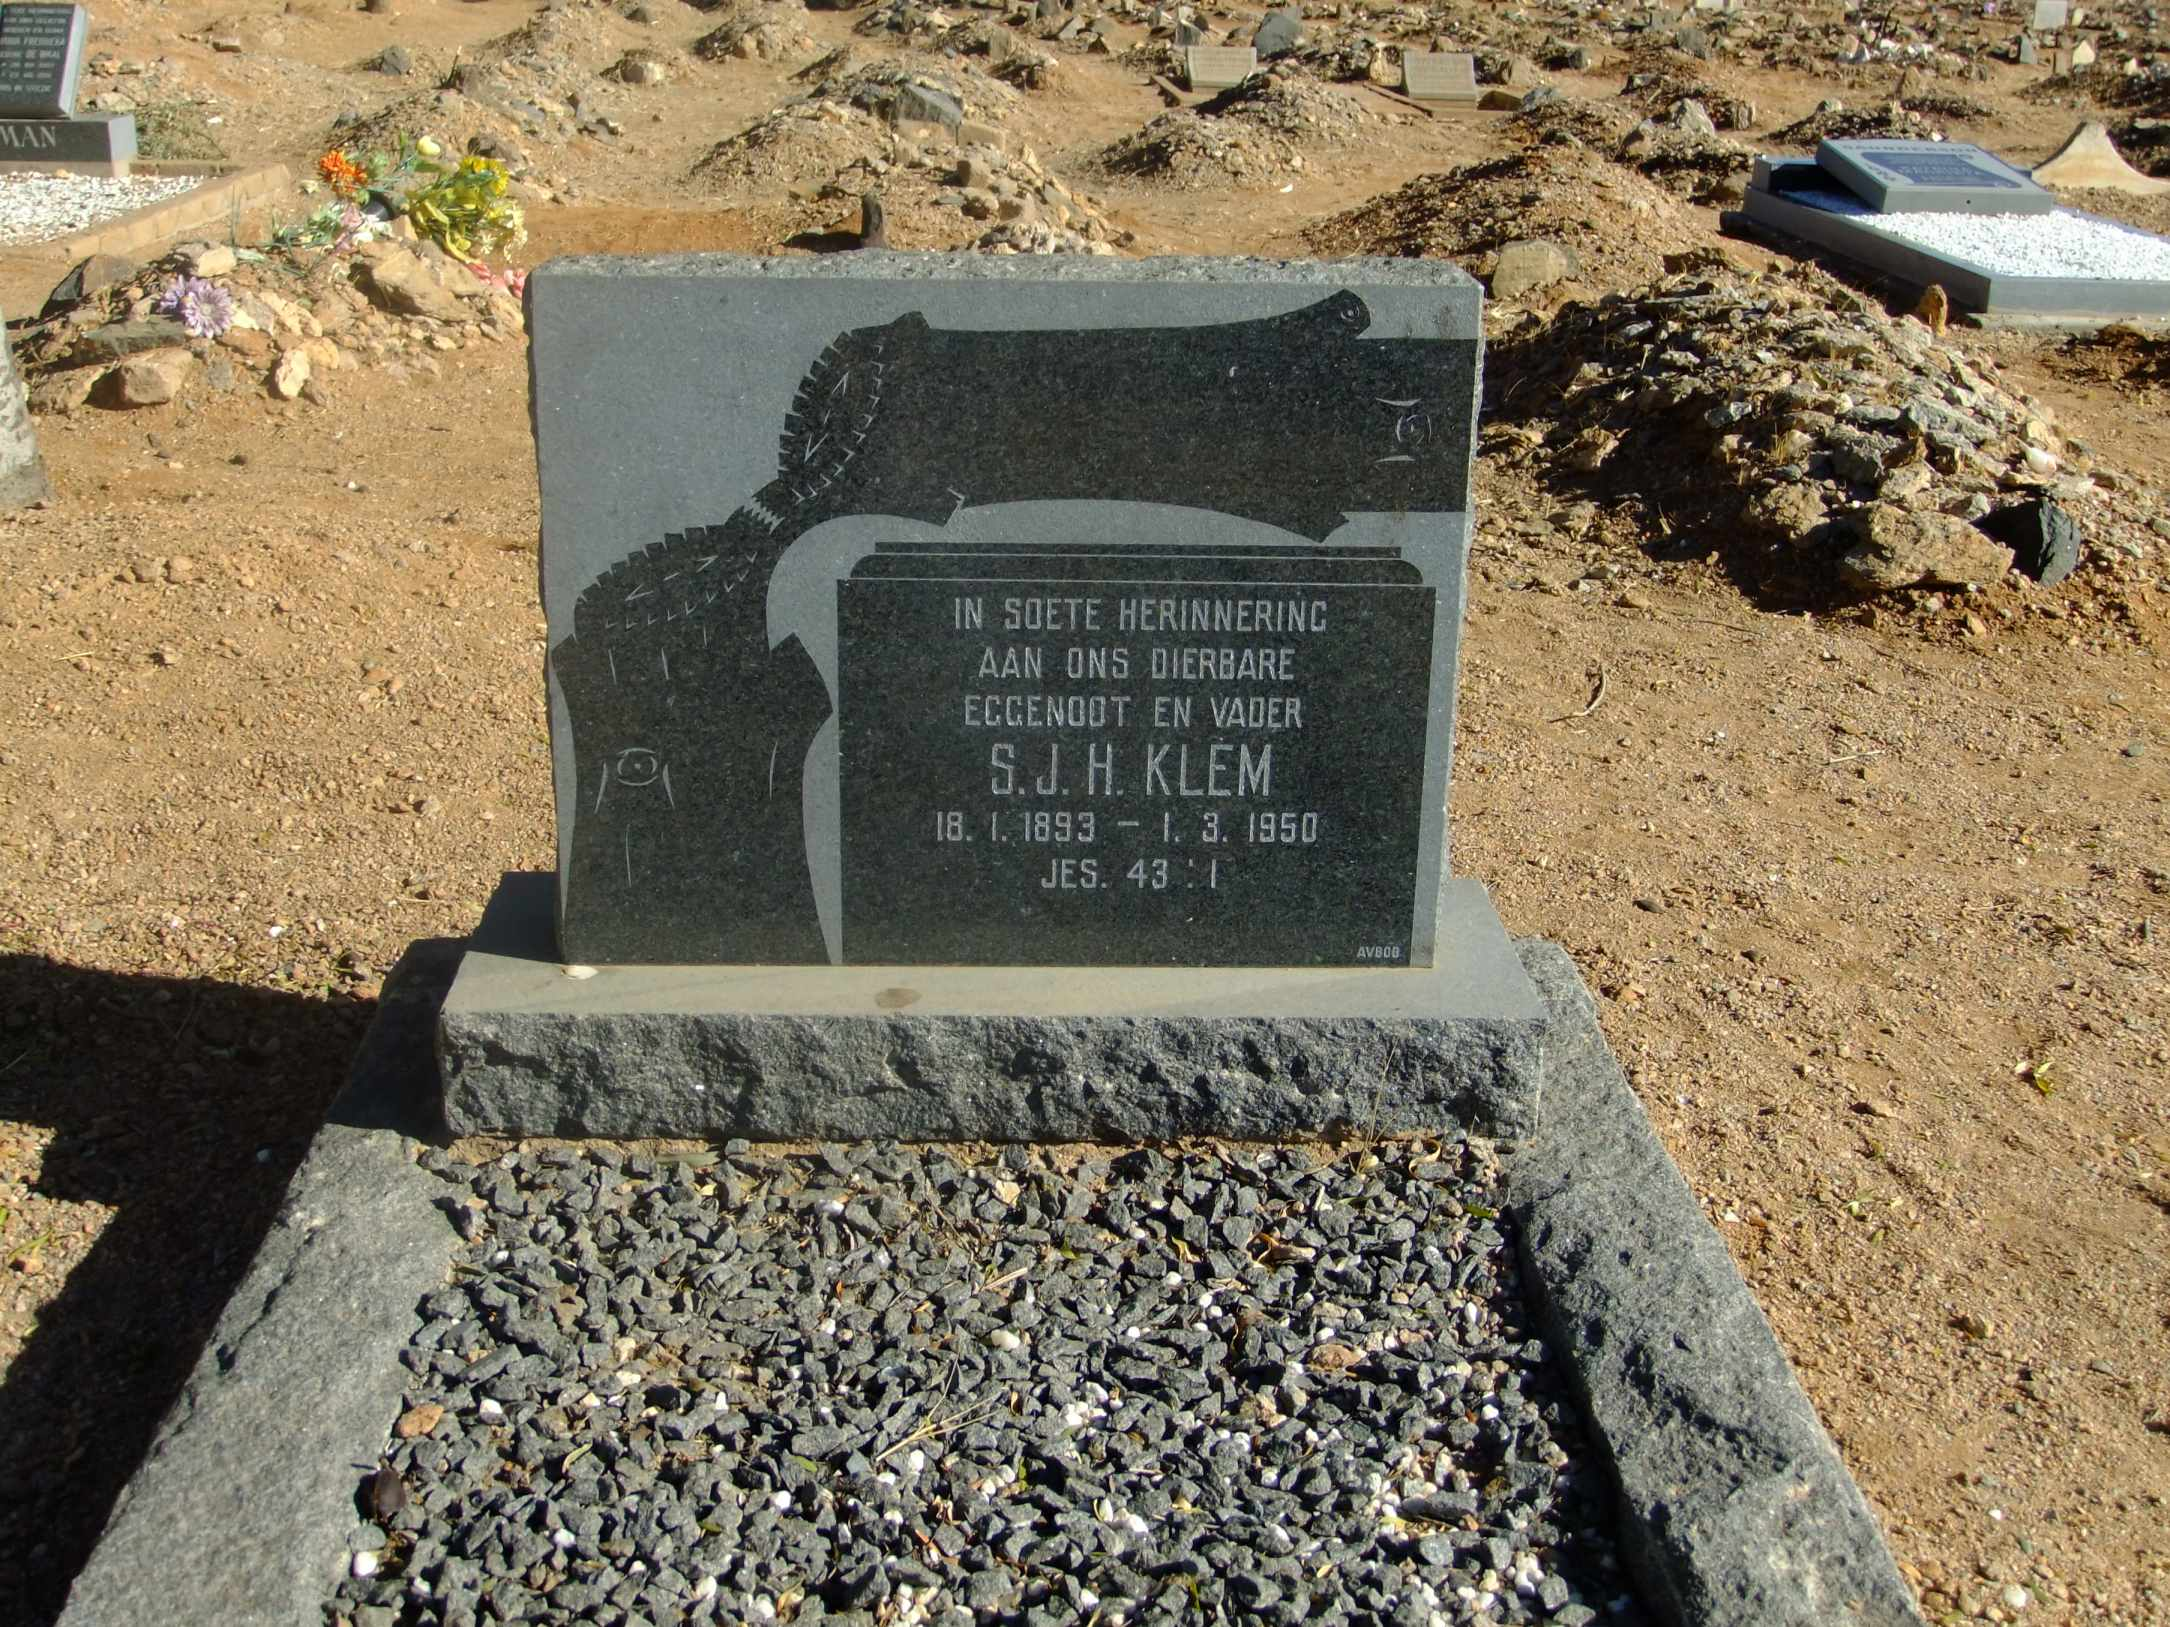 Klem, SJH born 18 January 1893 died 01 March 1950